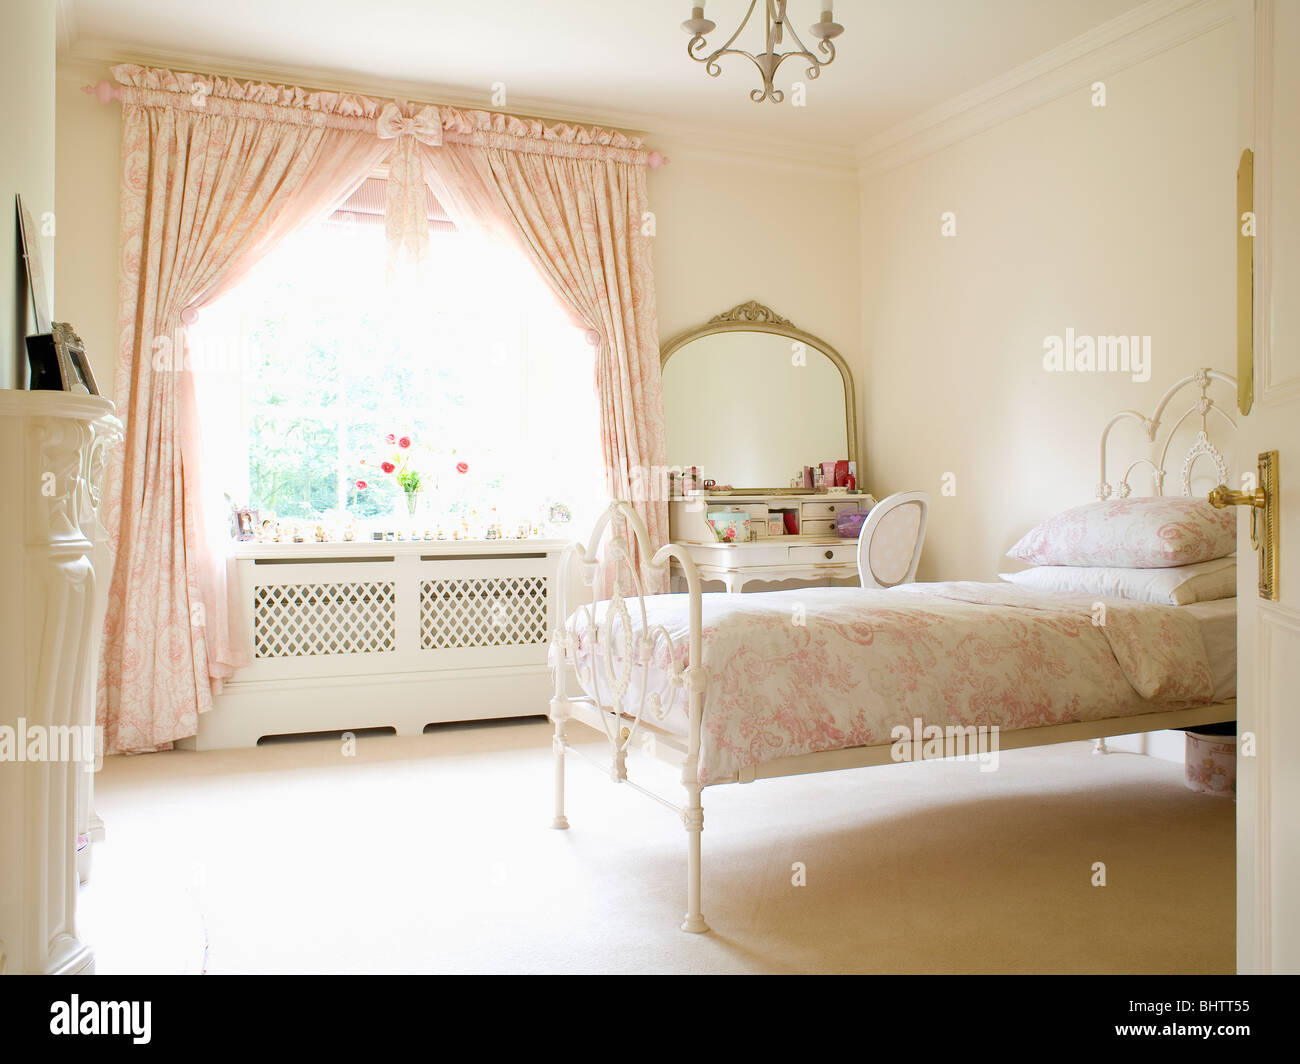 Pink Toile-de-Jouy Curtains On Window In Cream Country Bedroom With Stock Photo: 28205329